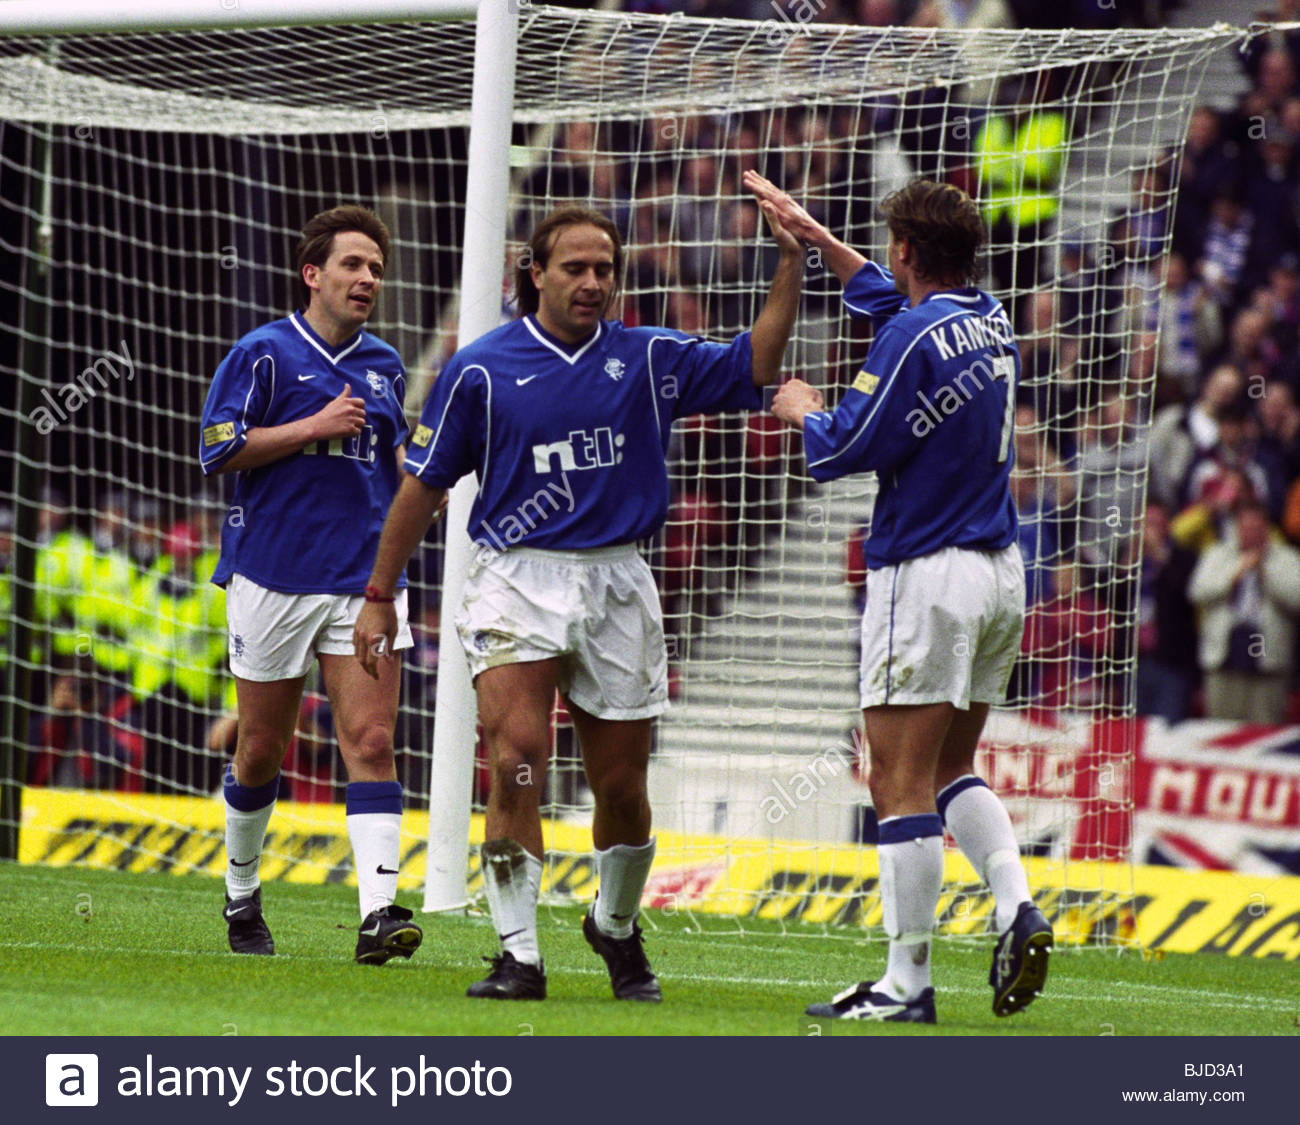 08/04/00 TENNENT'S SCOTTISH CUP SEMI-FINAL AYR UTD v RANGERS (0-7) HAMPDEN - GLASGOW Sebastian Rozental (centre) - Stock Image